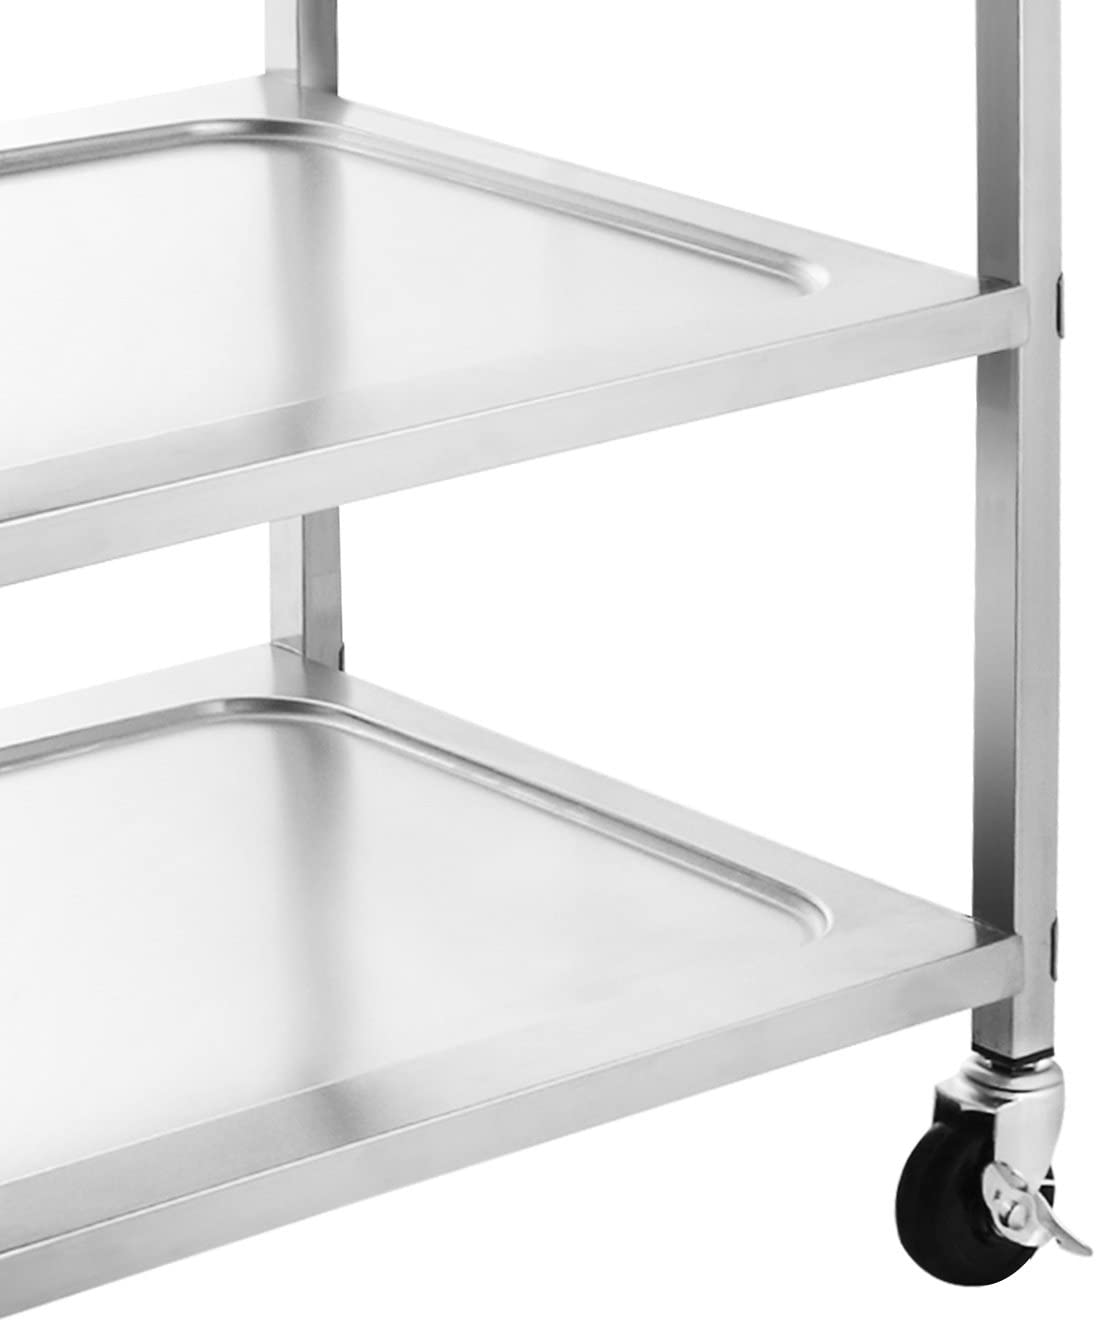 3-Shelf with Armrest LOVSHARE Utility Cart Kitchen Carts With Storage Stainless Steel All-Purpose Industrial Cart With Wheels